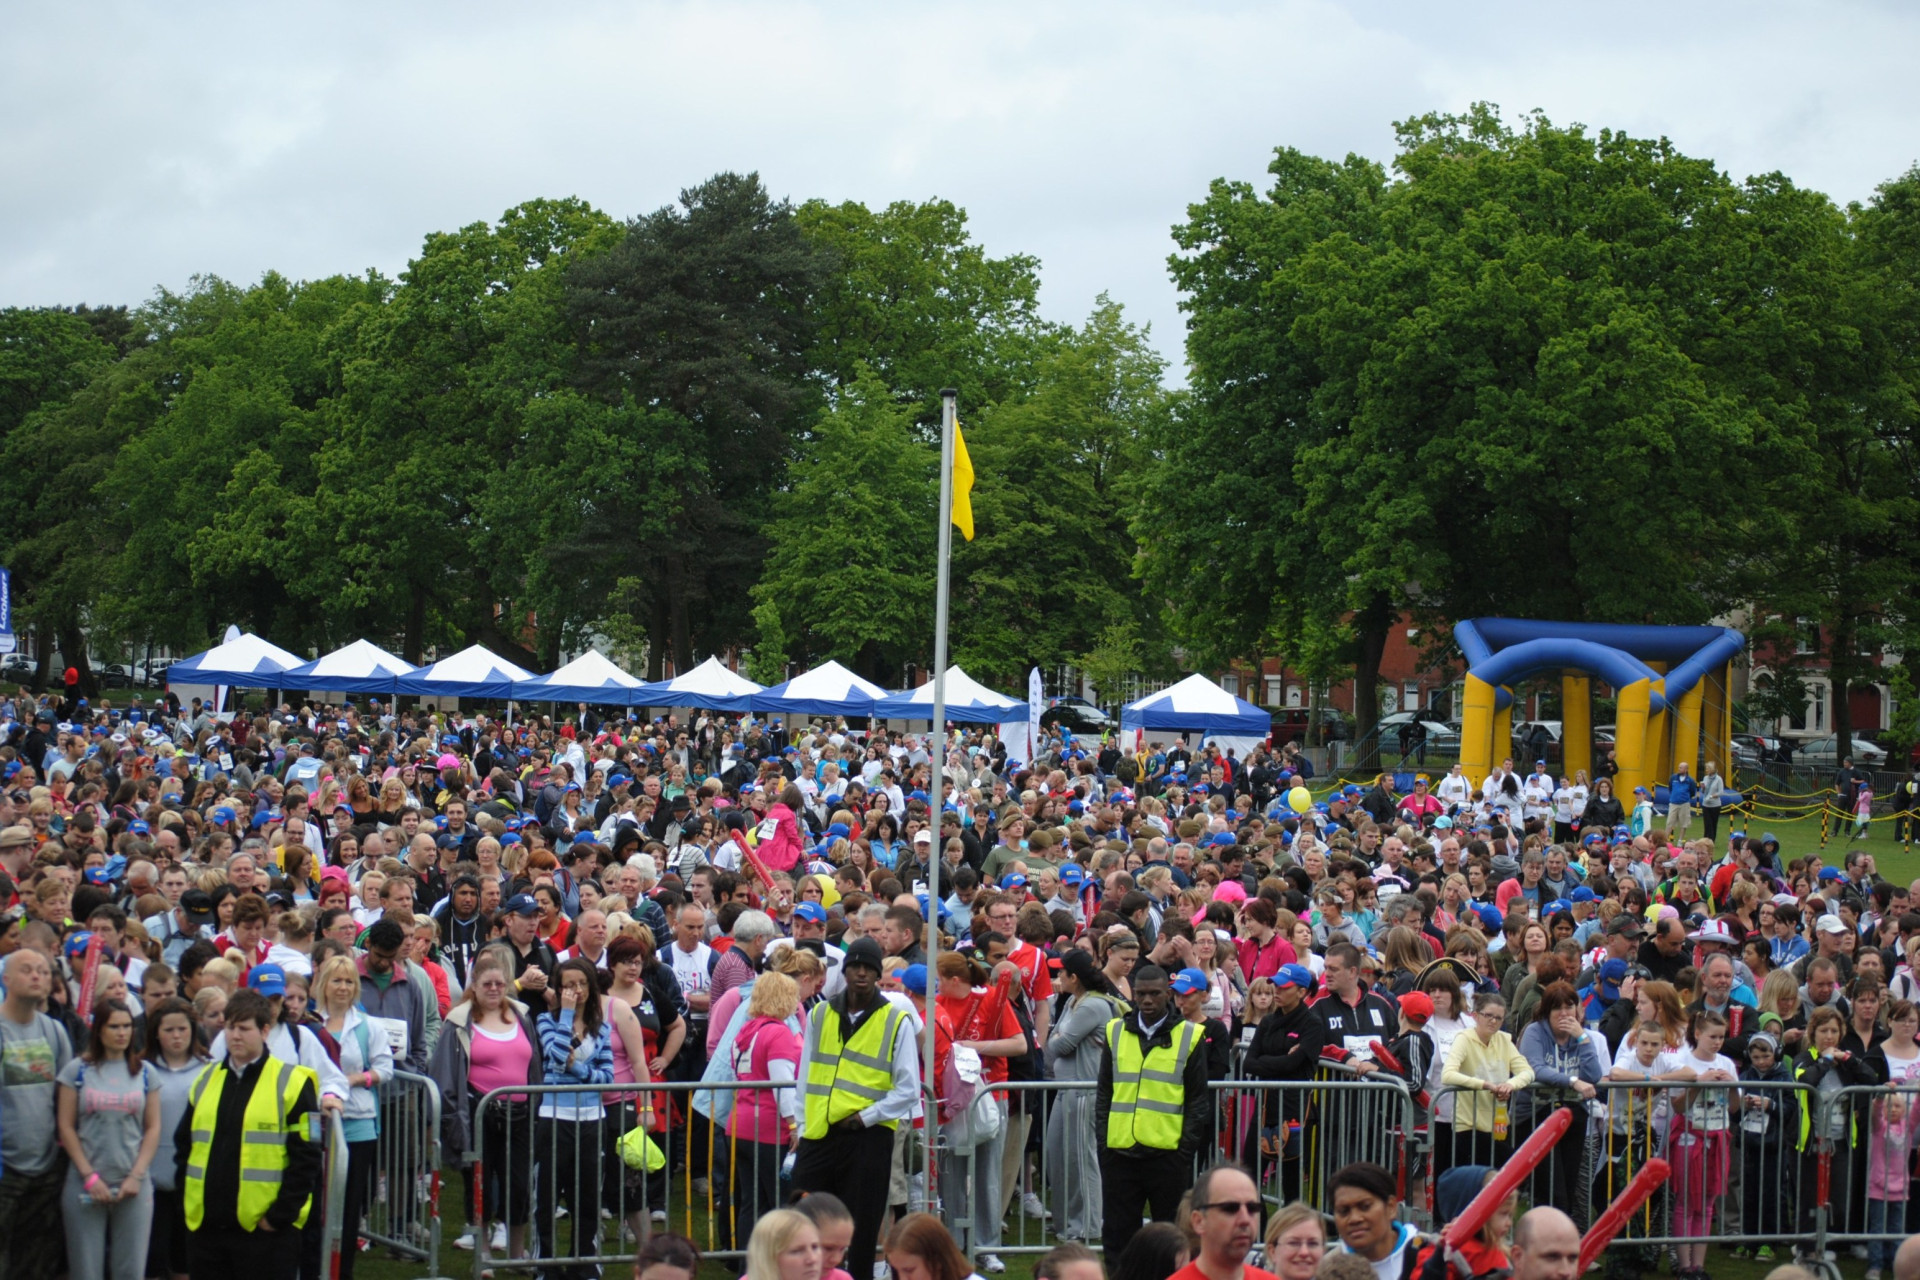 Walkathon 2011 - Crowd